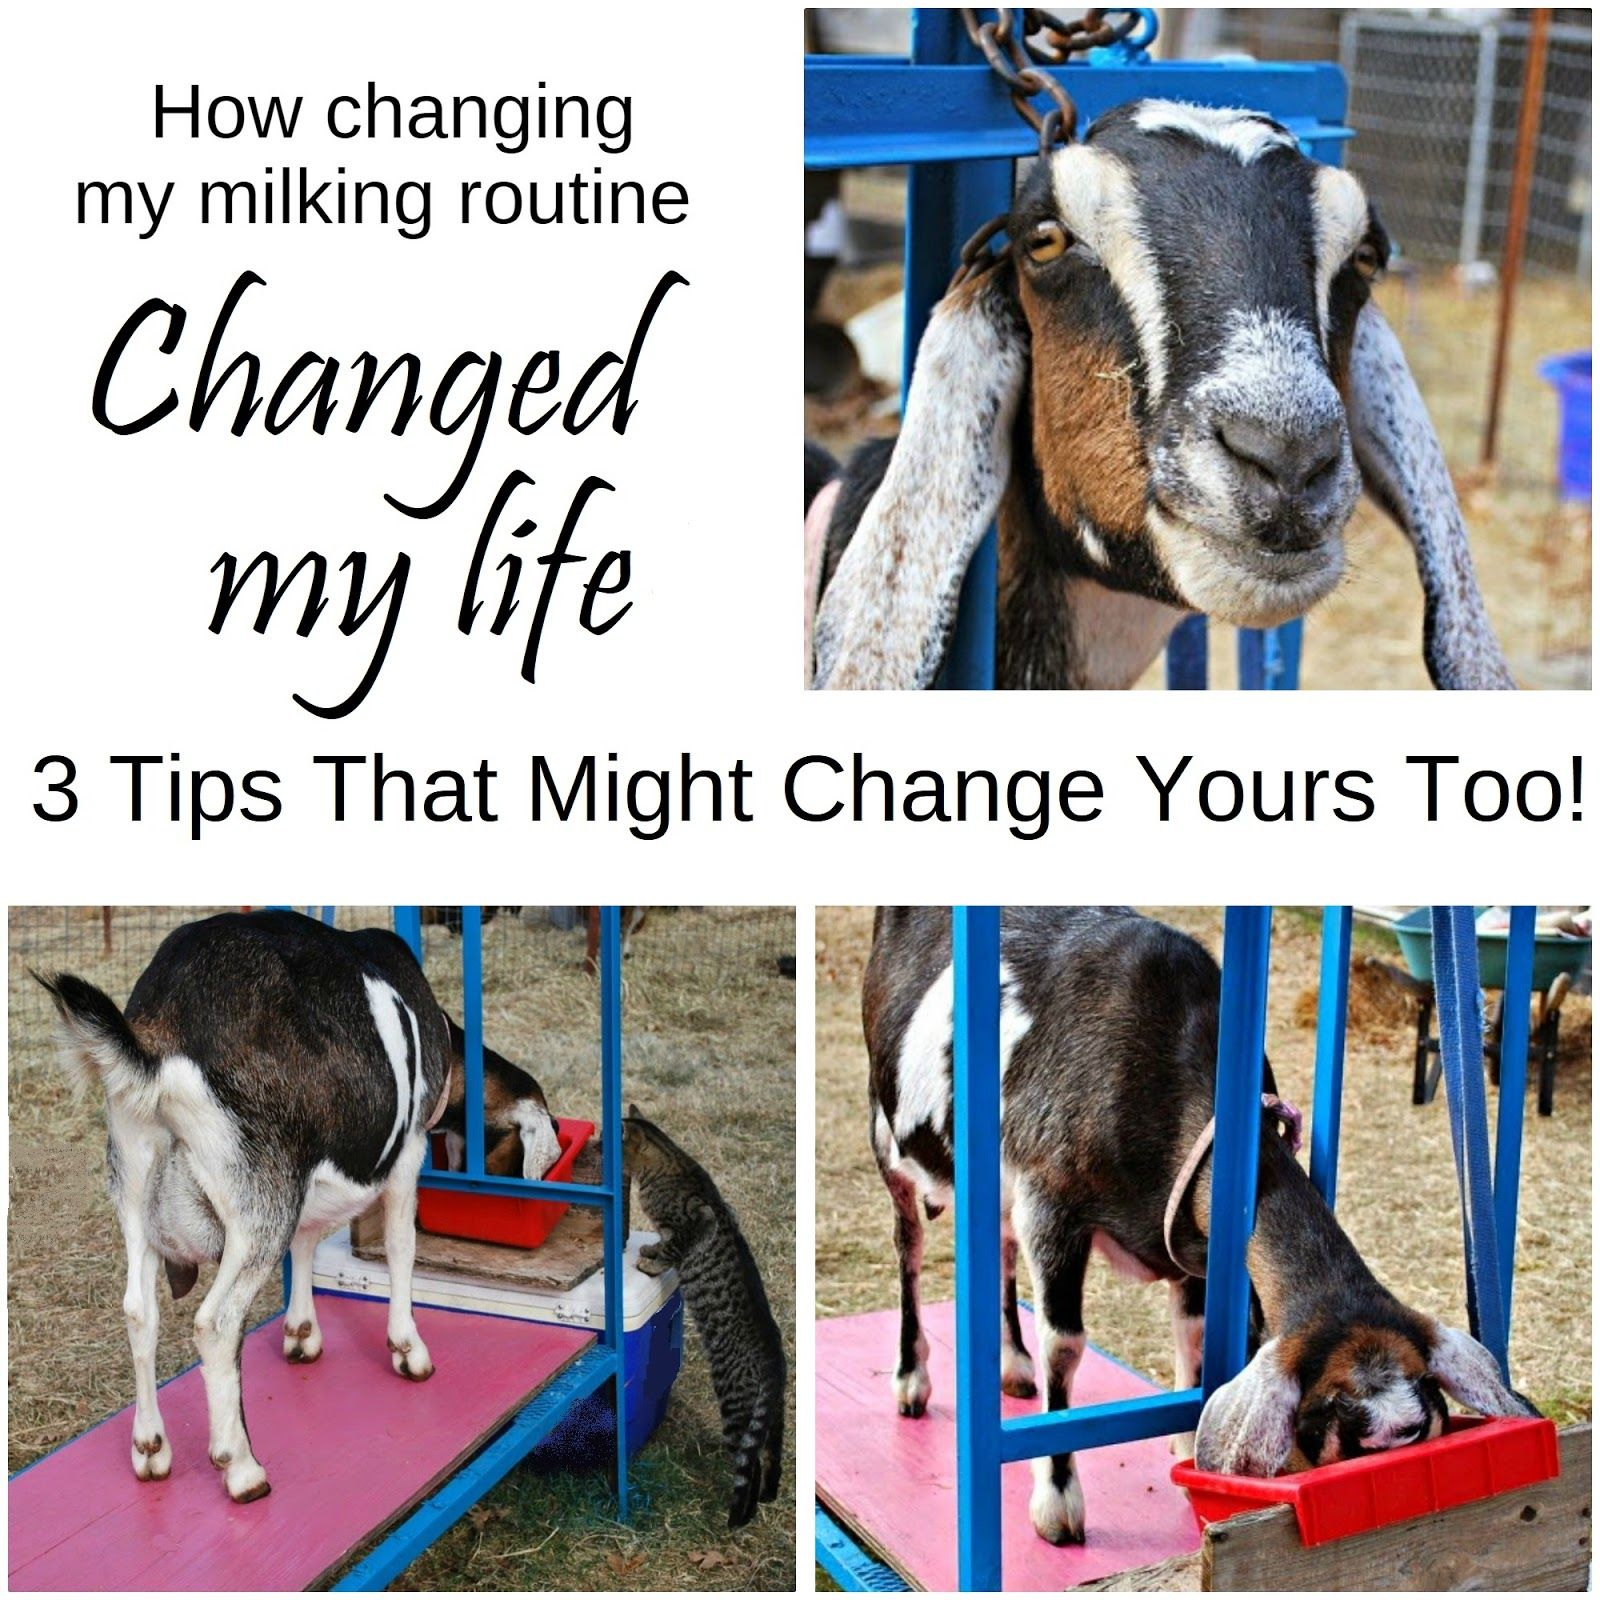 How Changing My Milking Routine Changed My Life